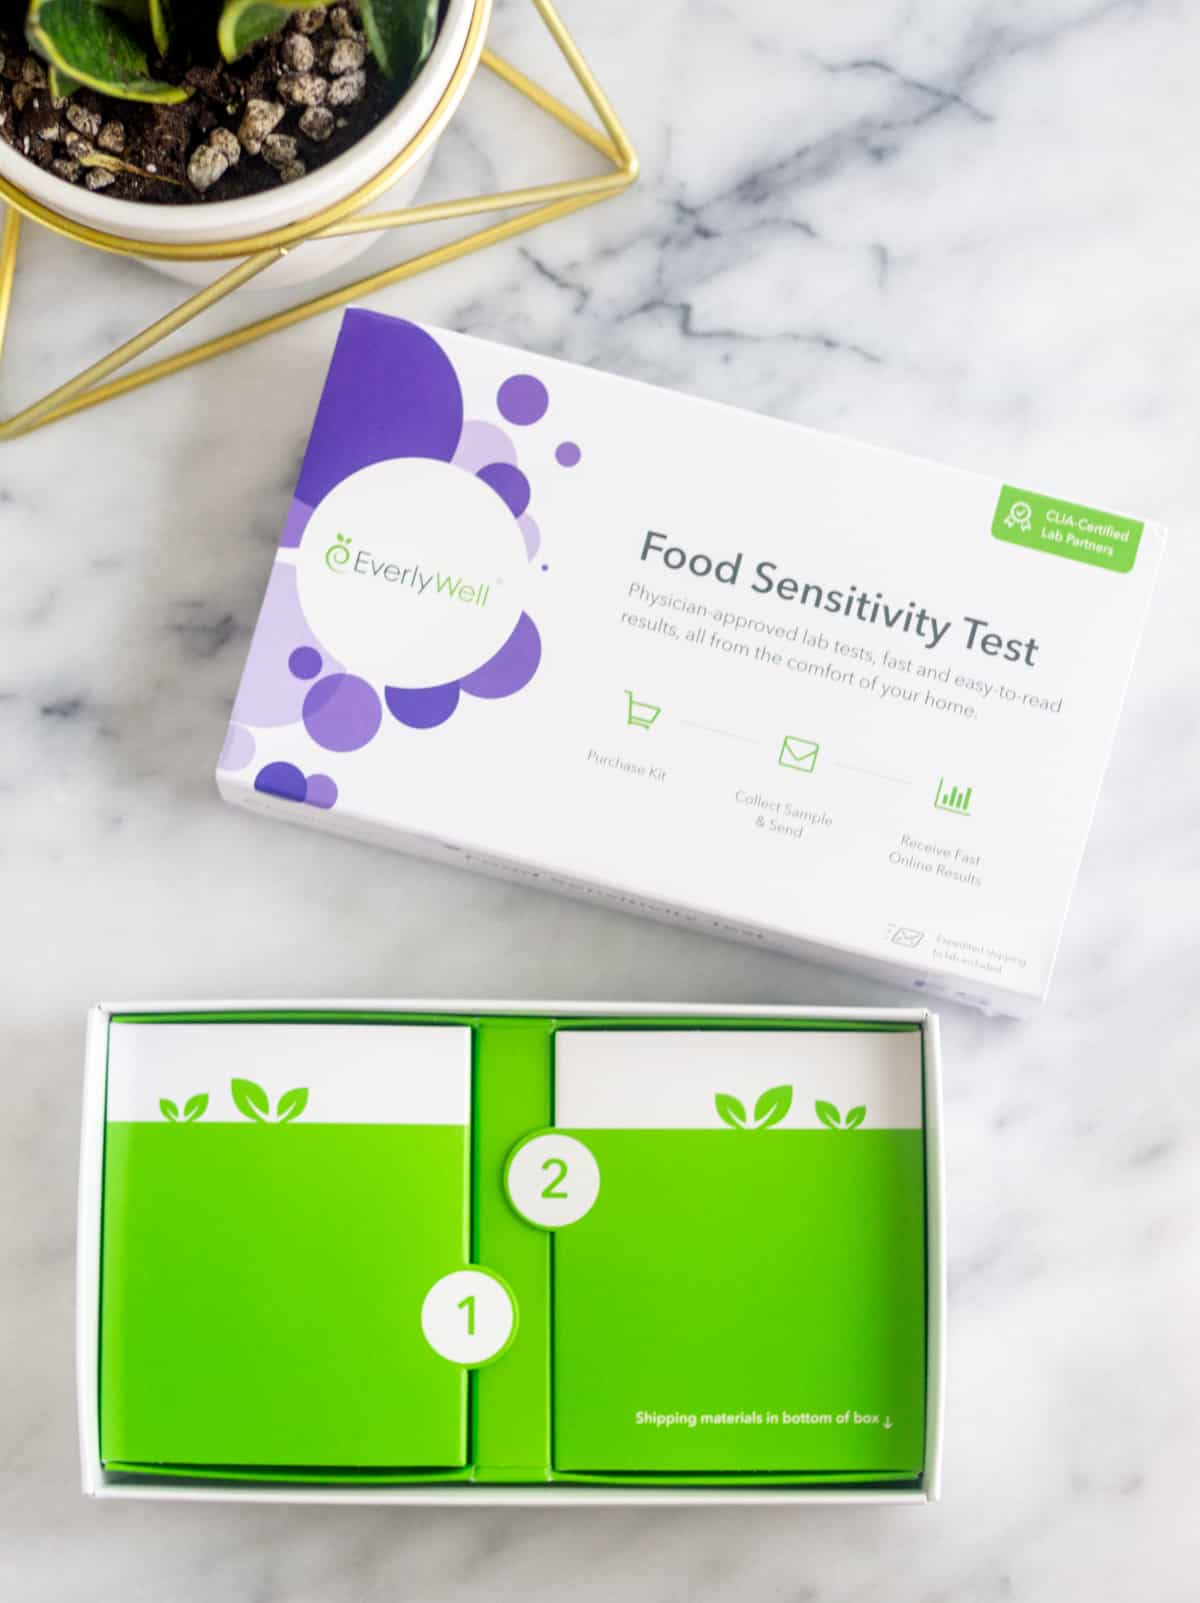 EverlyWell Food Sensitivity test box open on a white counter with the first steps in the box